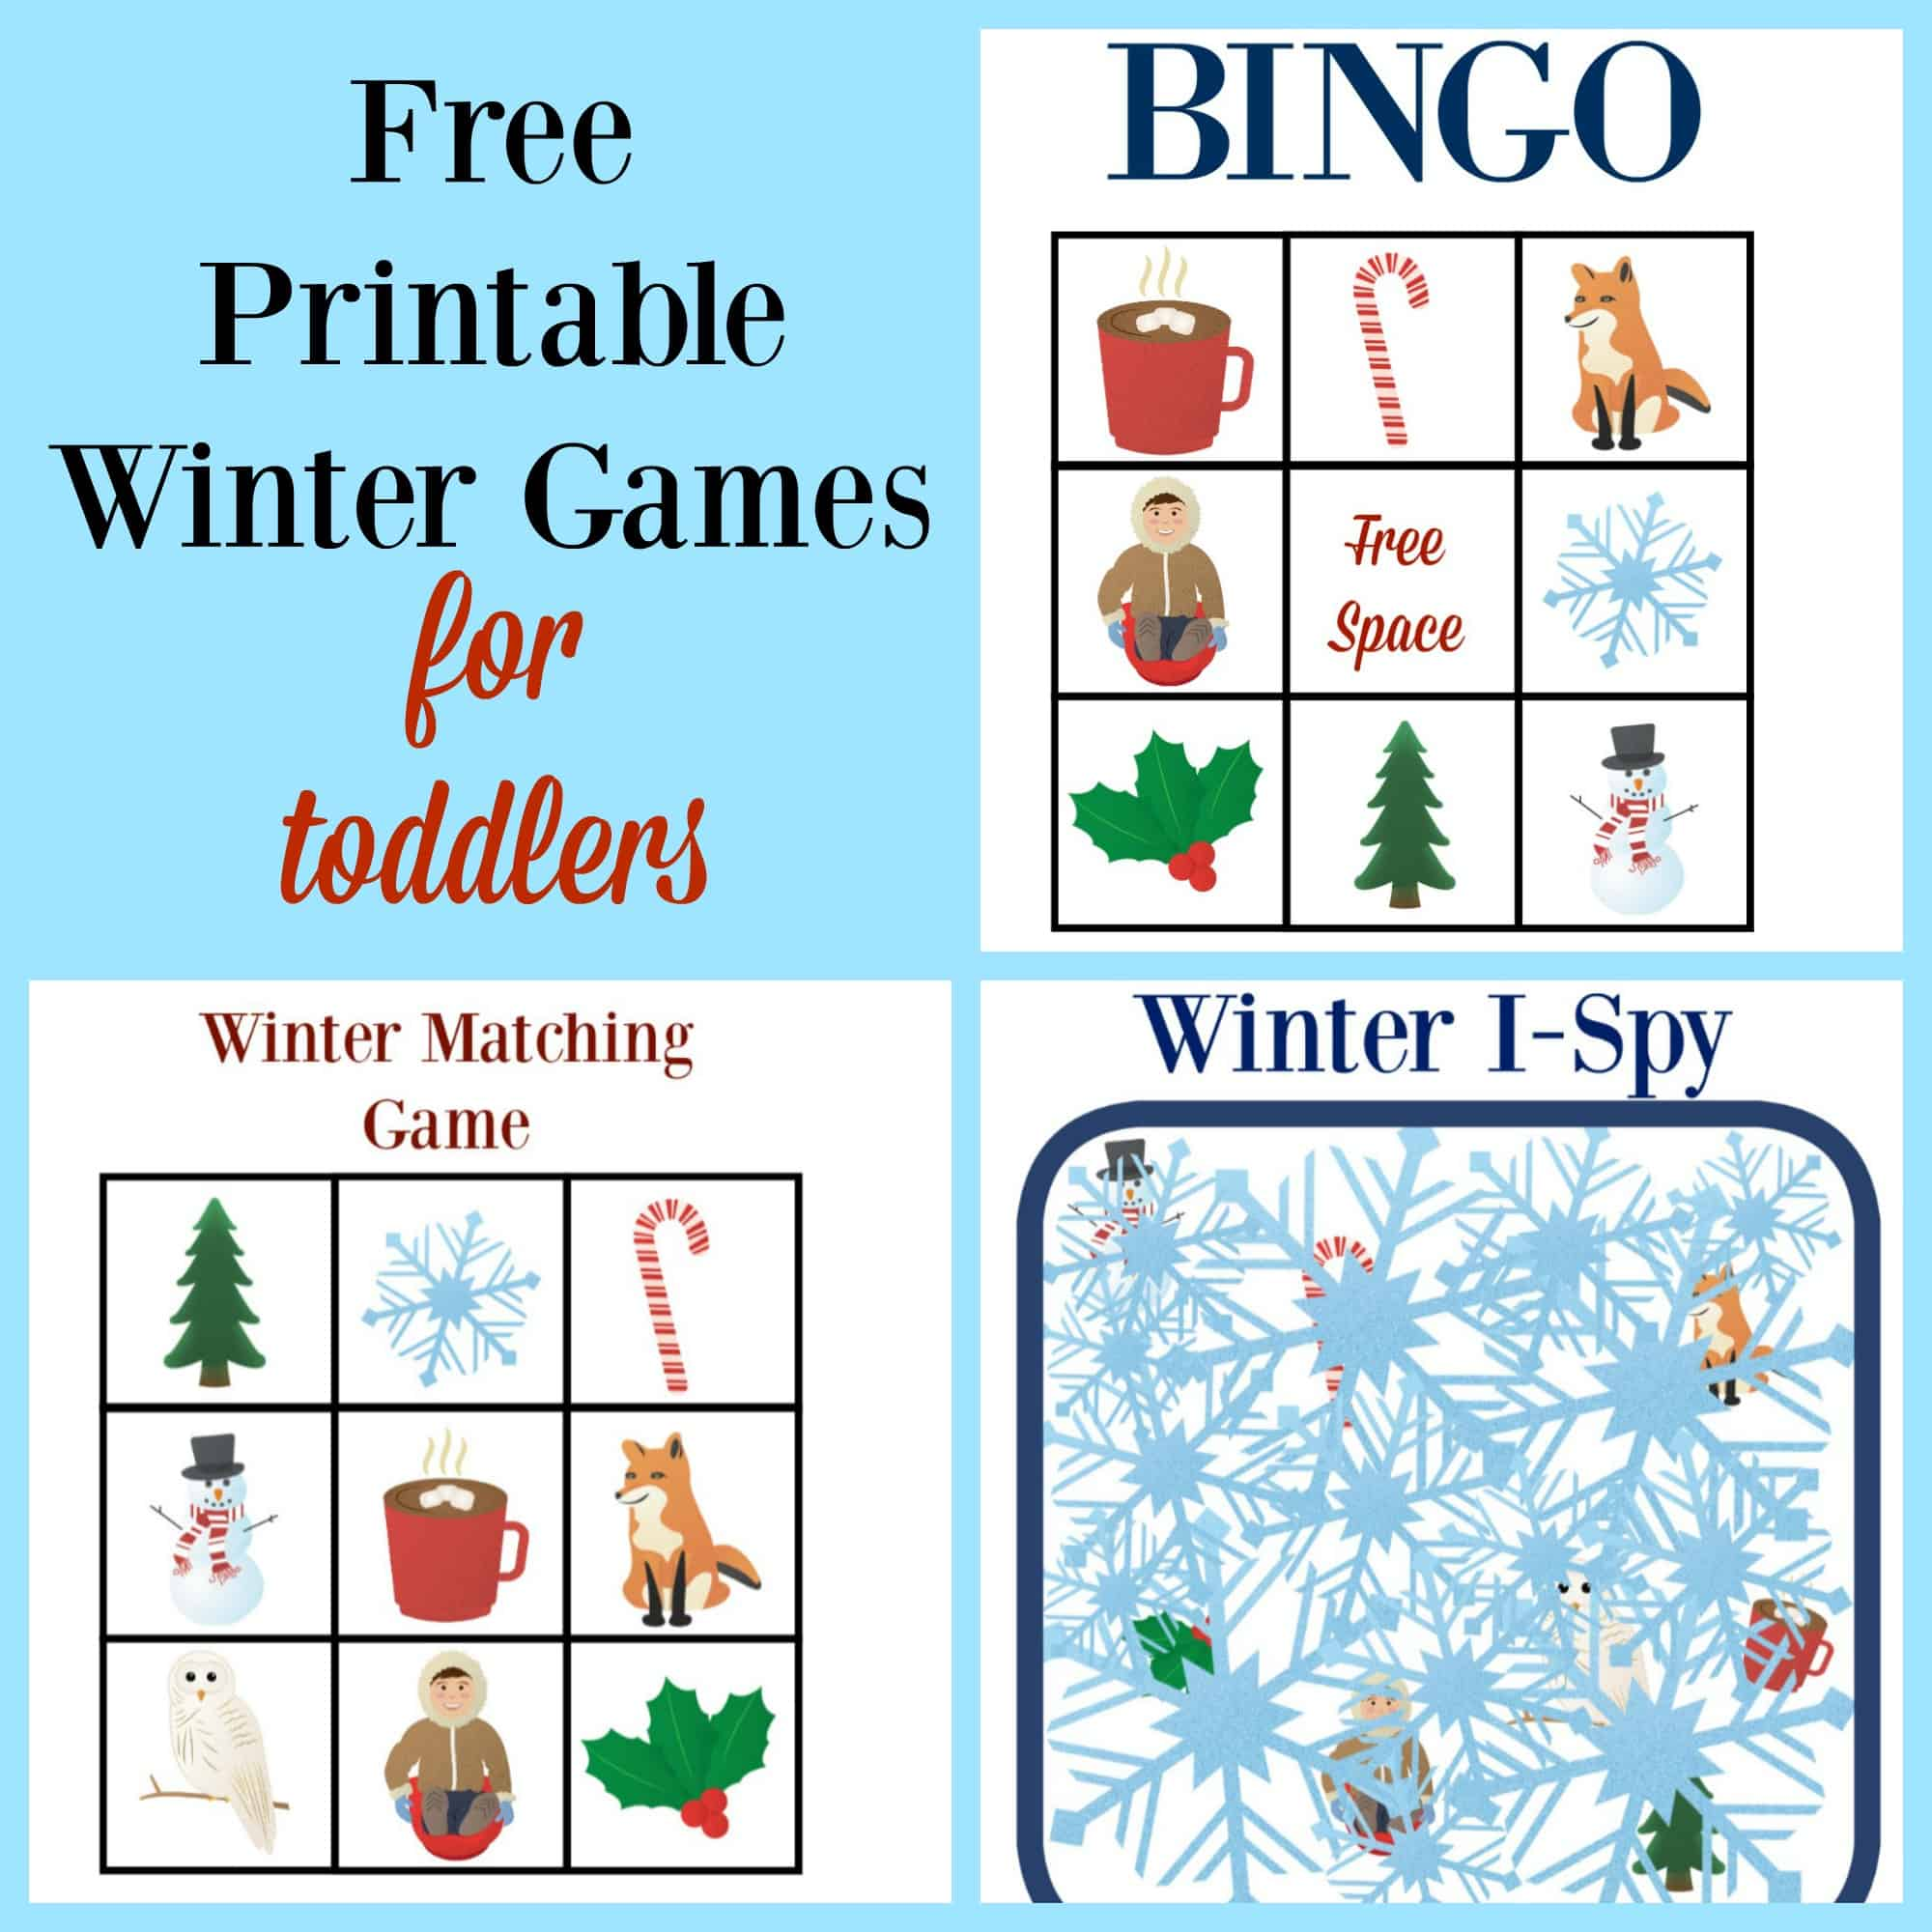 Spring Themed Printable Games For Toddlers And Preschoolers